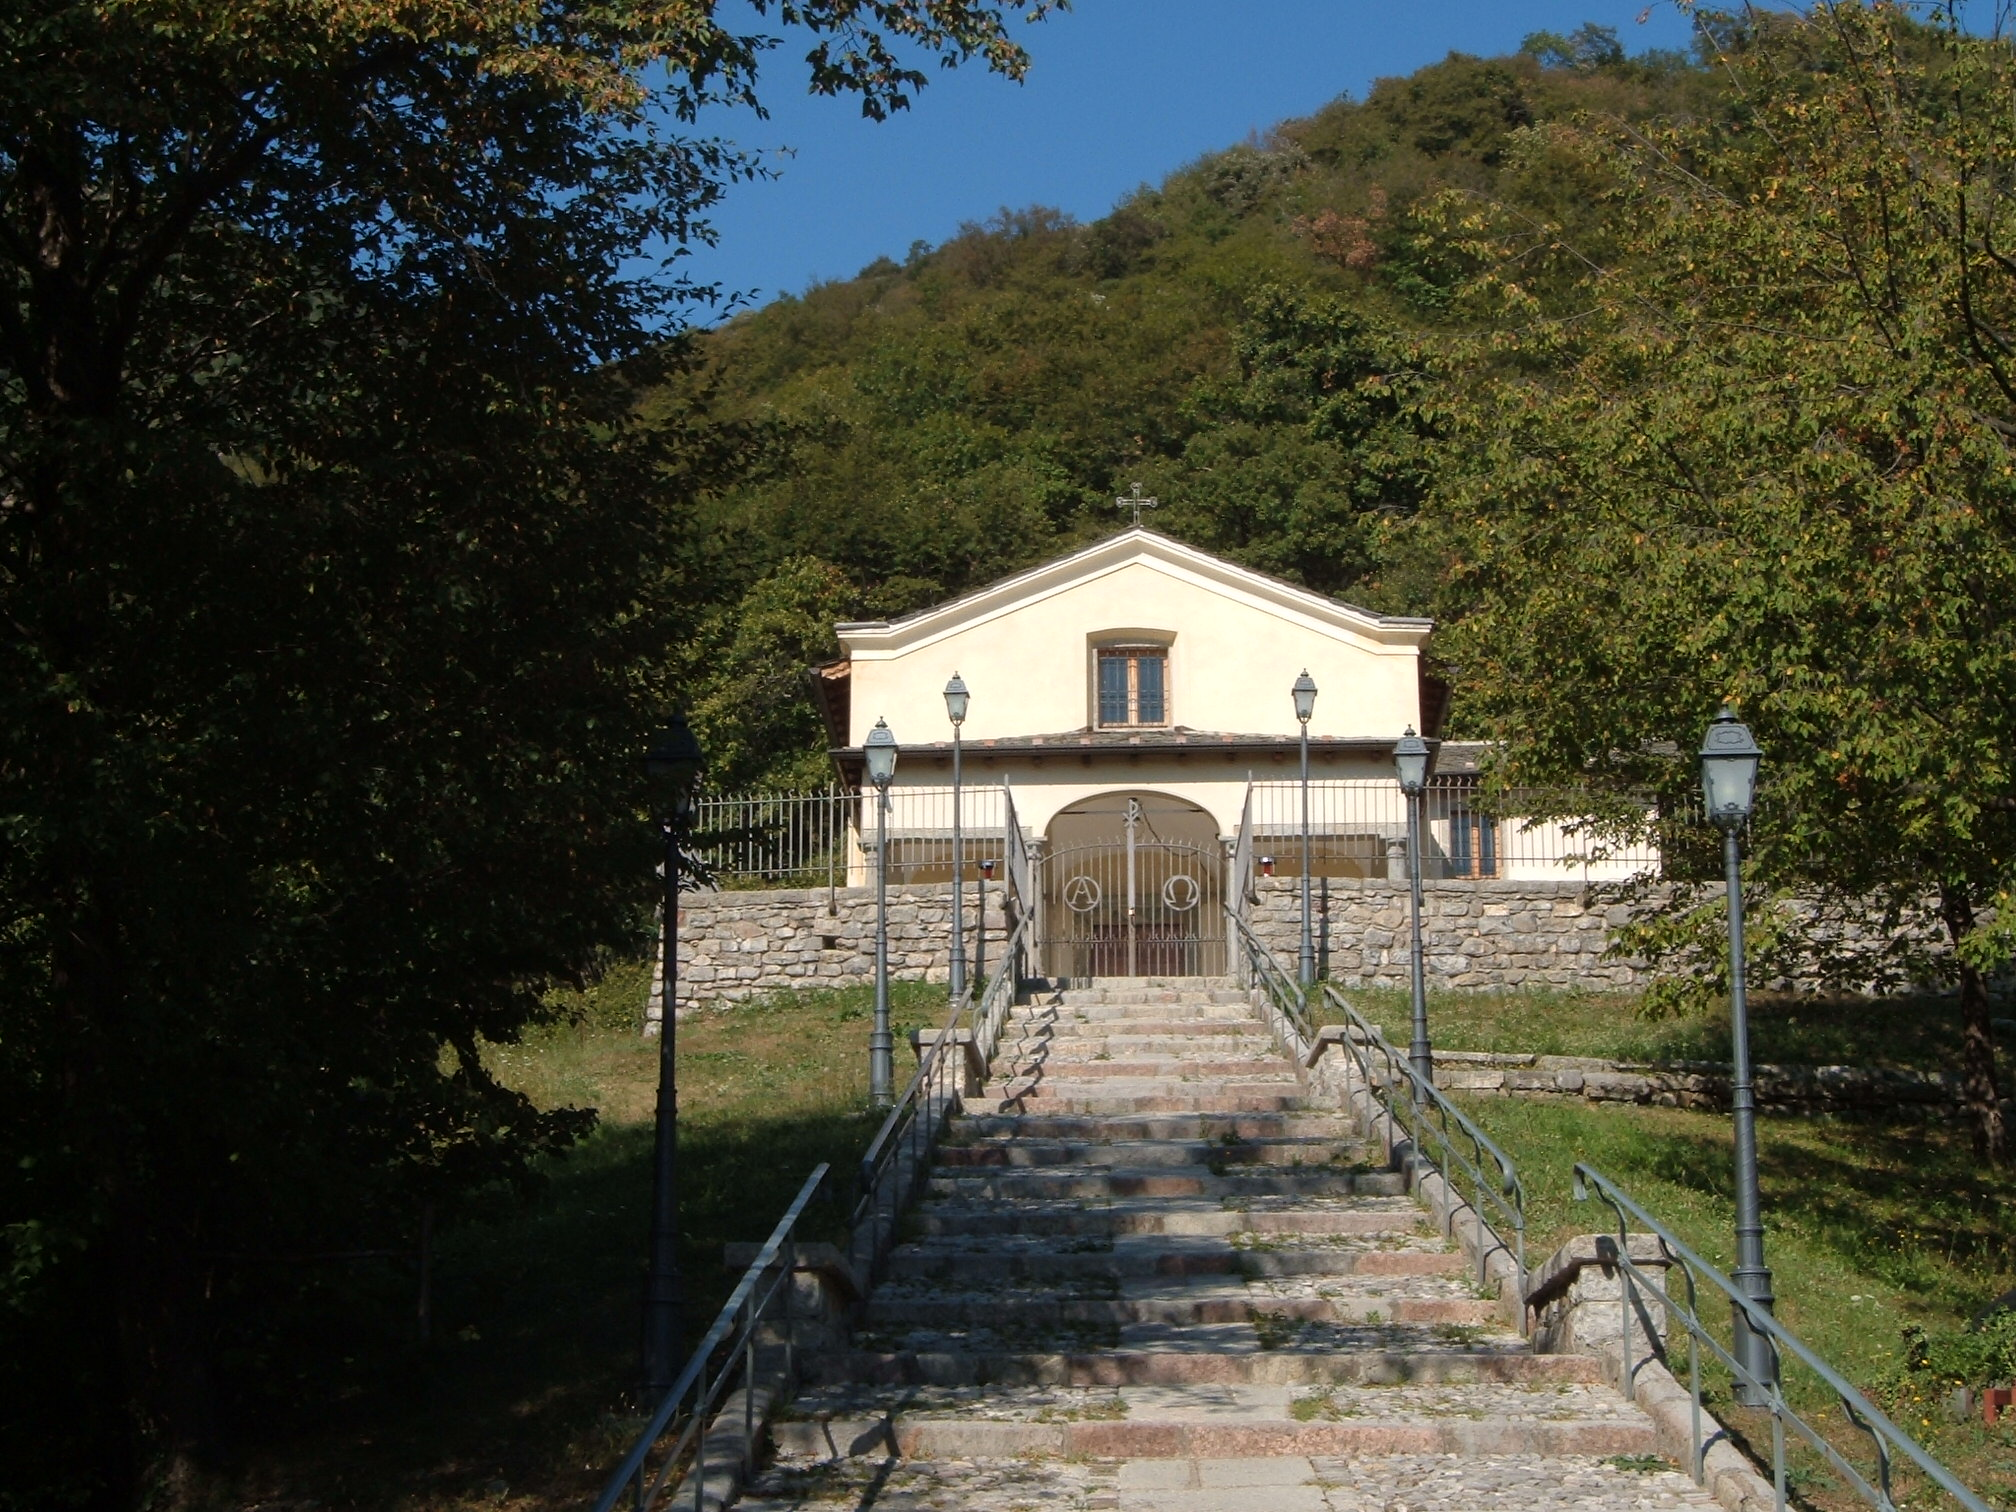 Oratorio san domenico